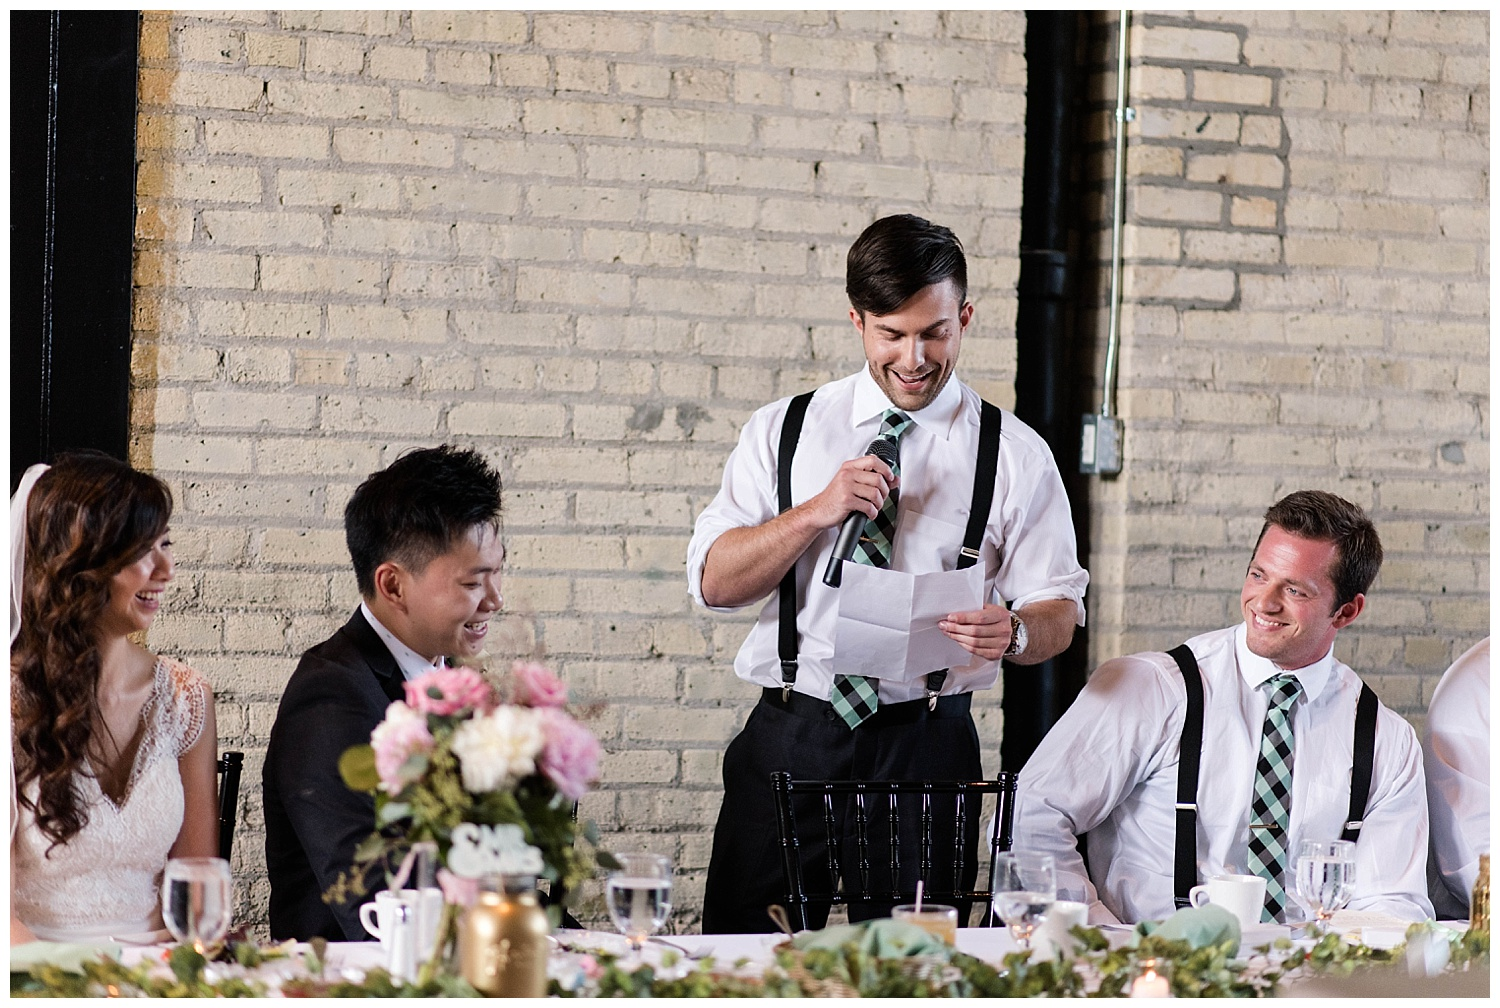 Weddings_by_Raisa_Photography_Saint_Mary_Magdalen_New_Vintage_Grand_Rapids_Michigan_Wedding_Photographer_0103.jpg